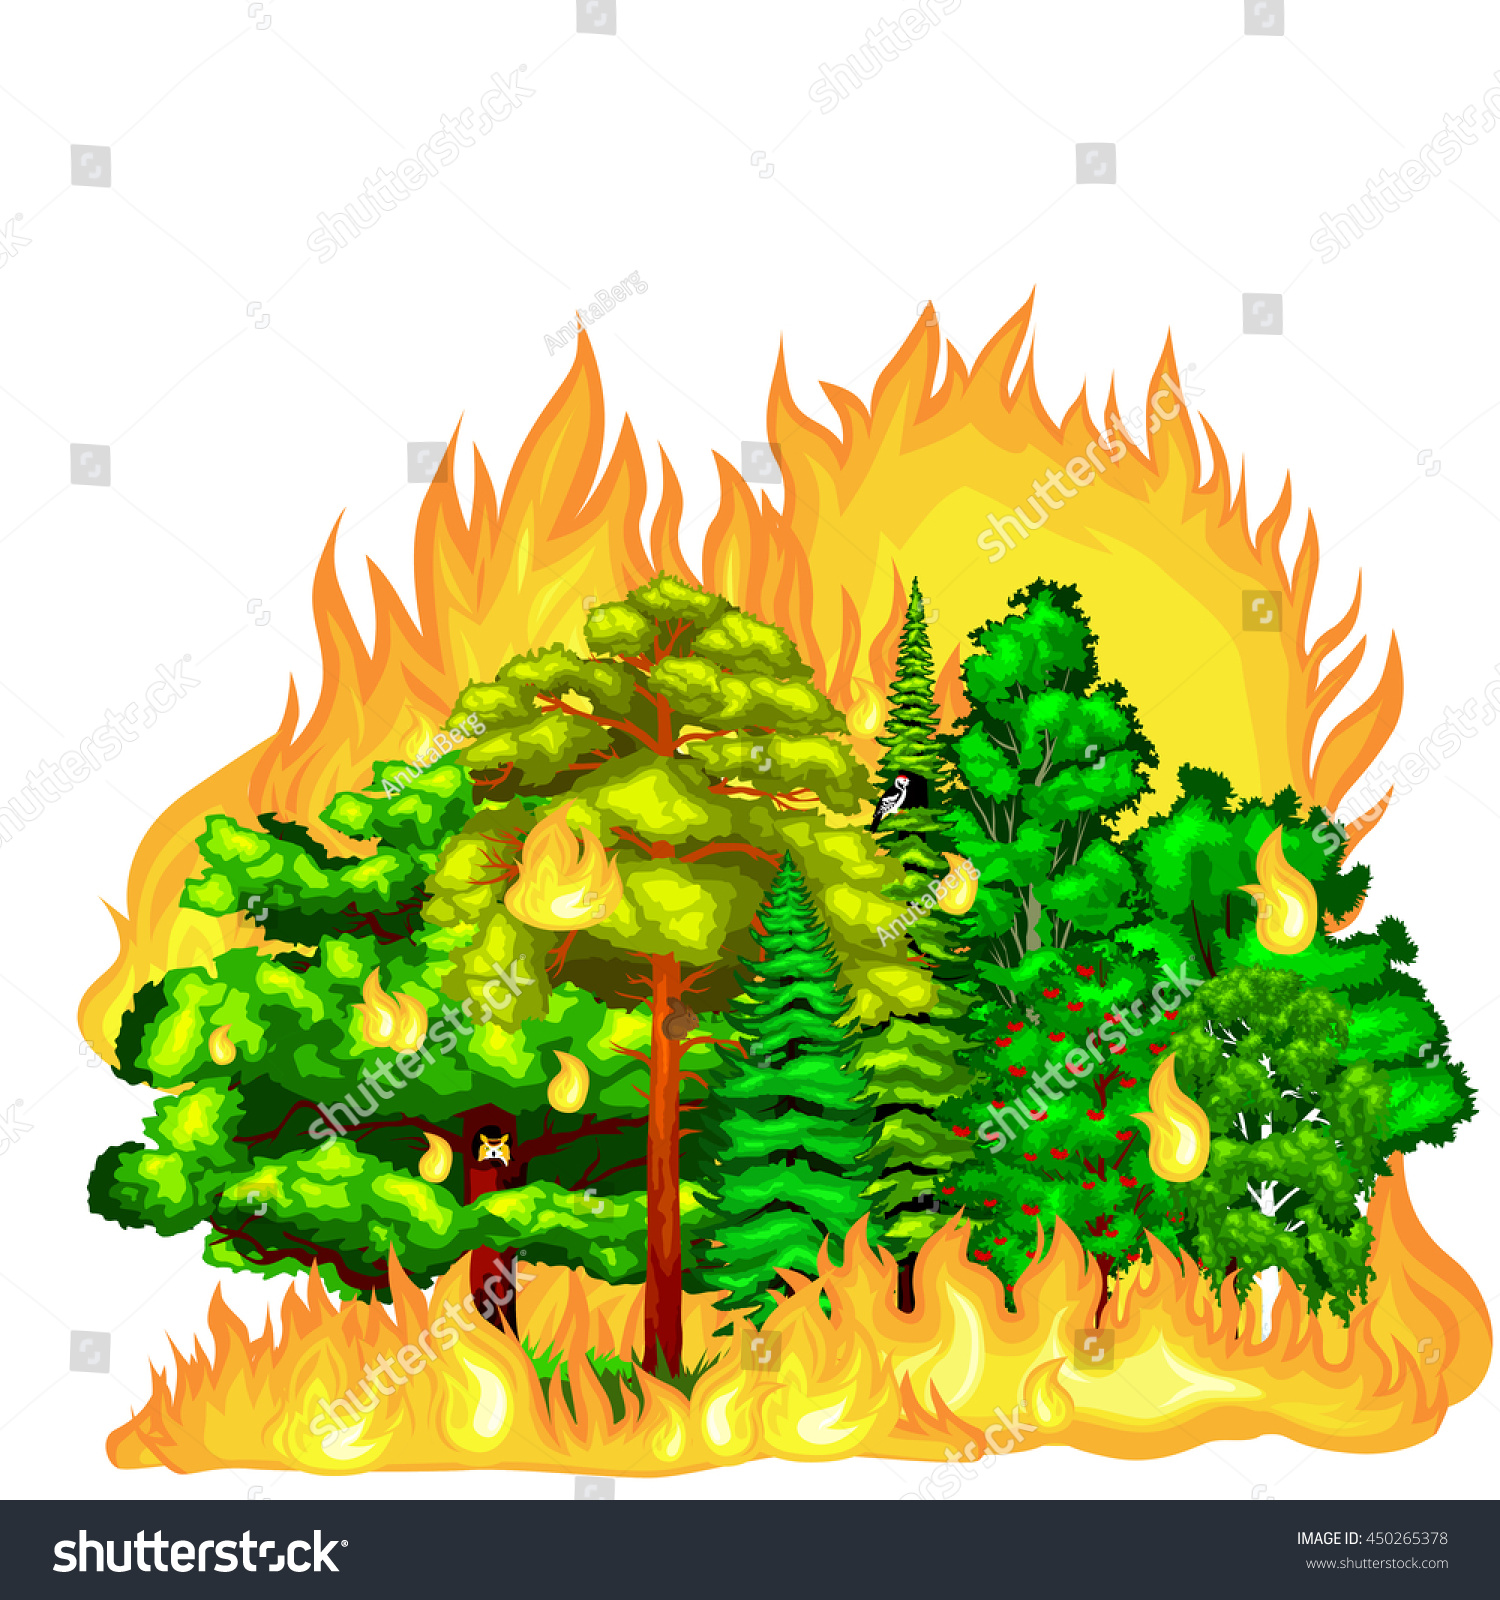 Nature Ecology: Forest Fire Landscape Damage Nature Ecology Stock Vector